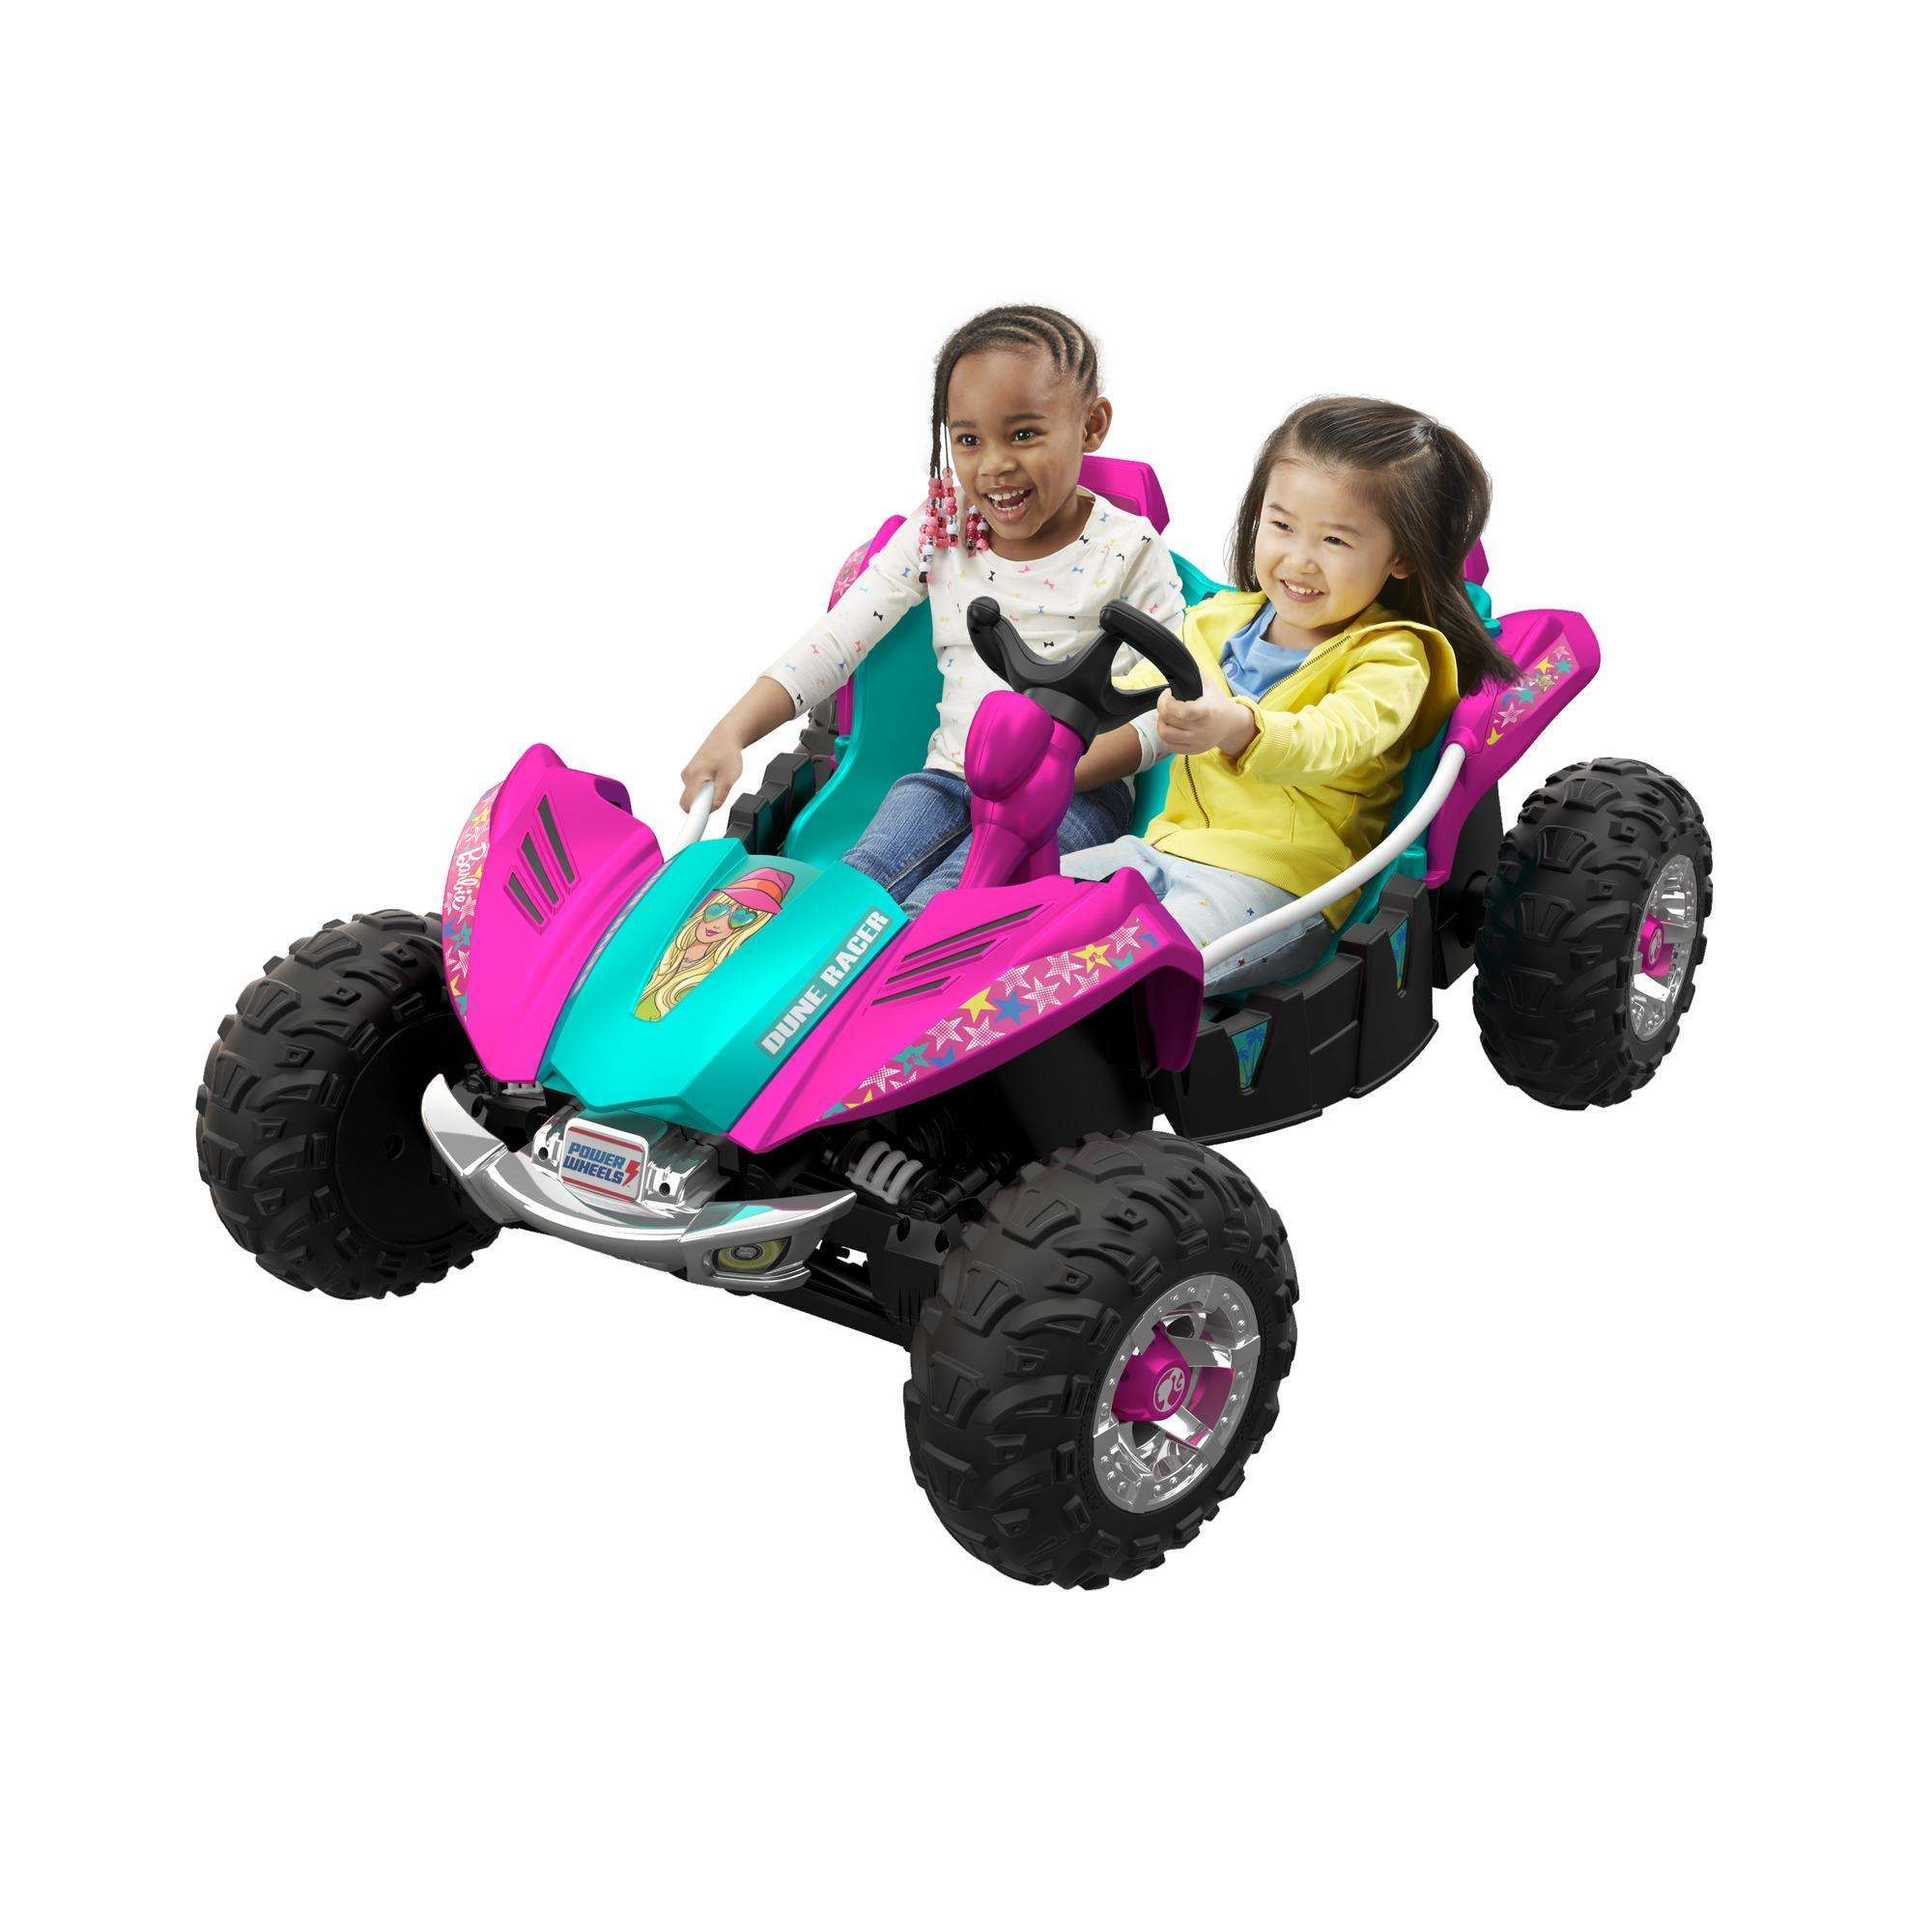 Power Wheels Barbie Dune Racer Ride-On Vehicle, Teal & Pink by FISHER PRICE